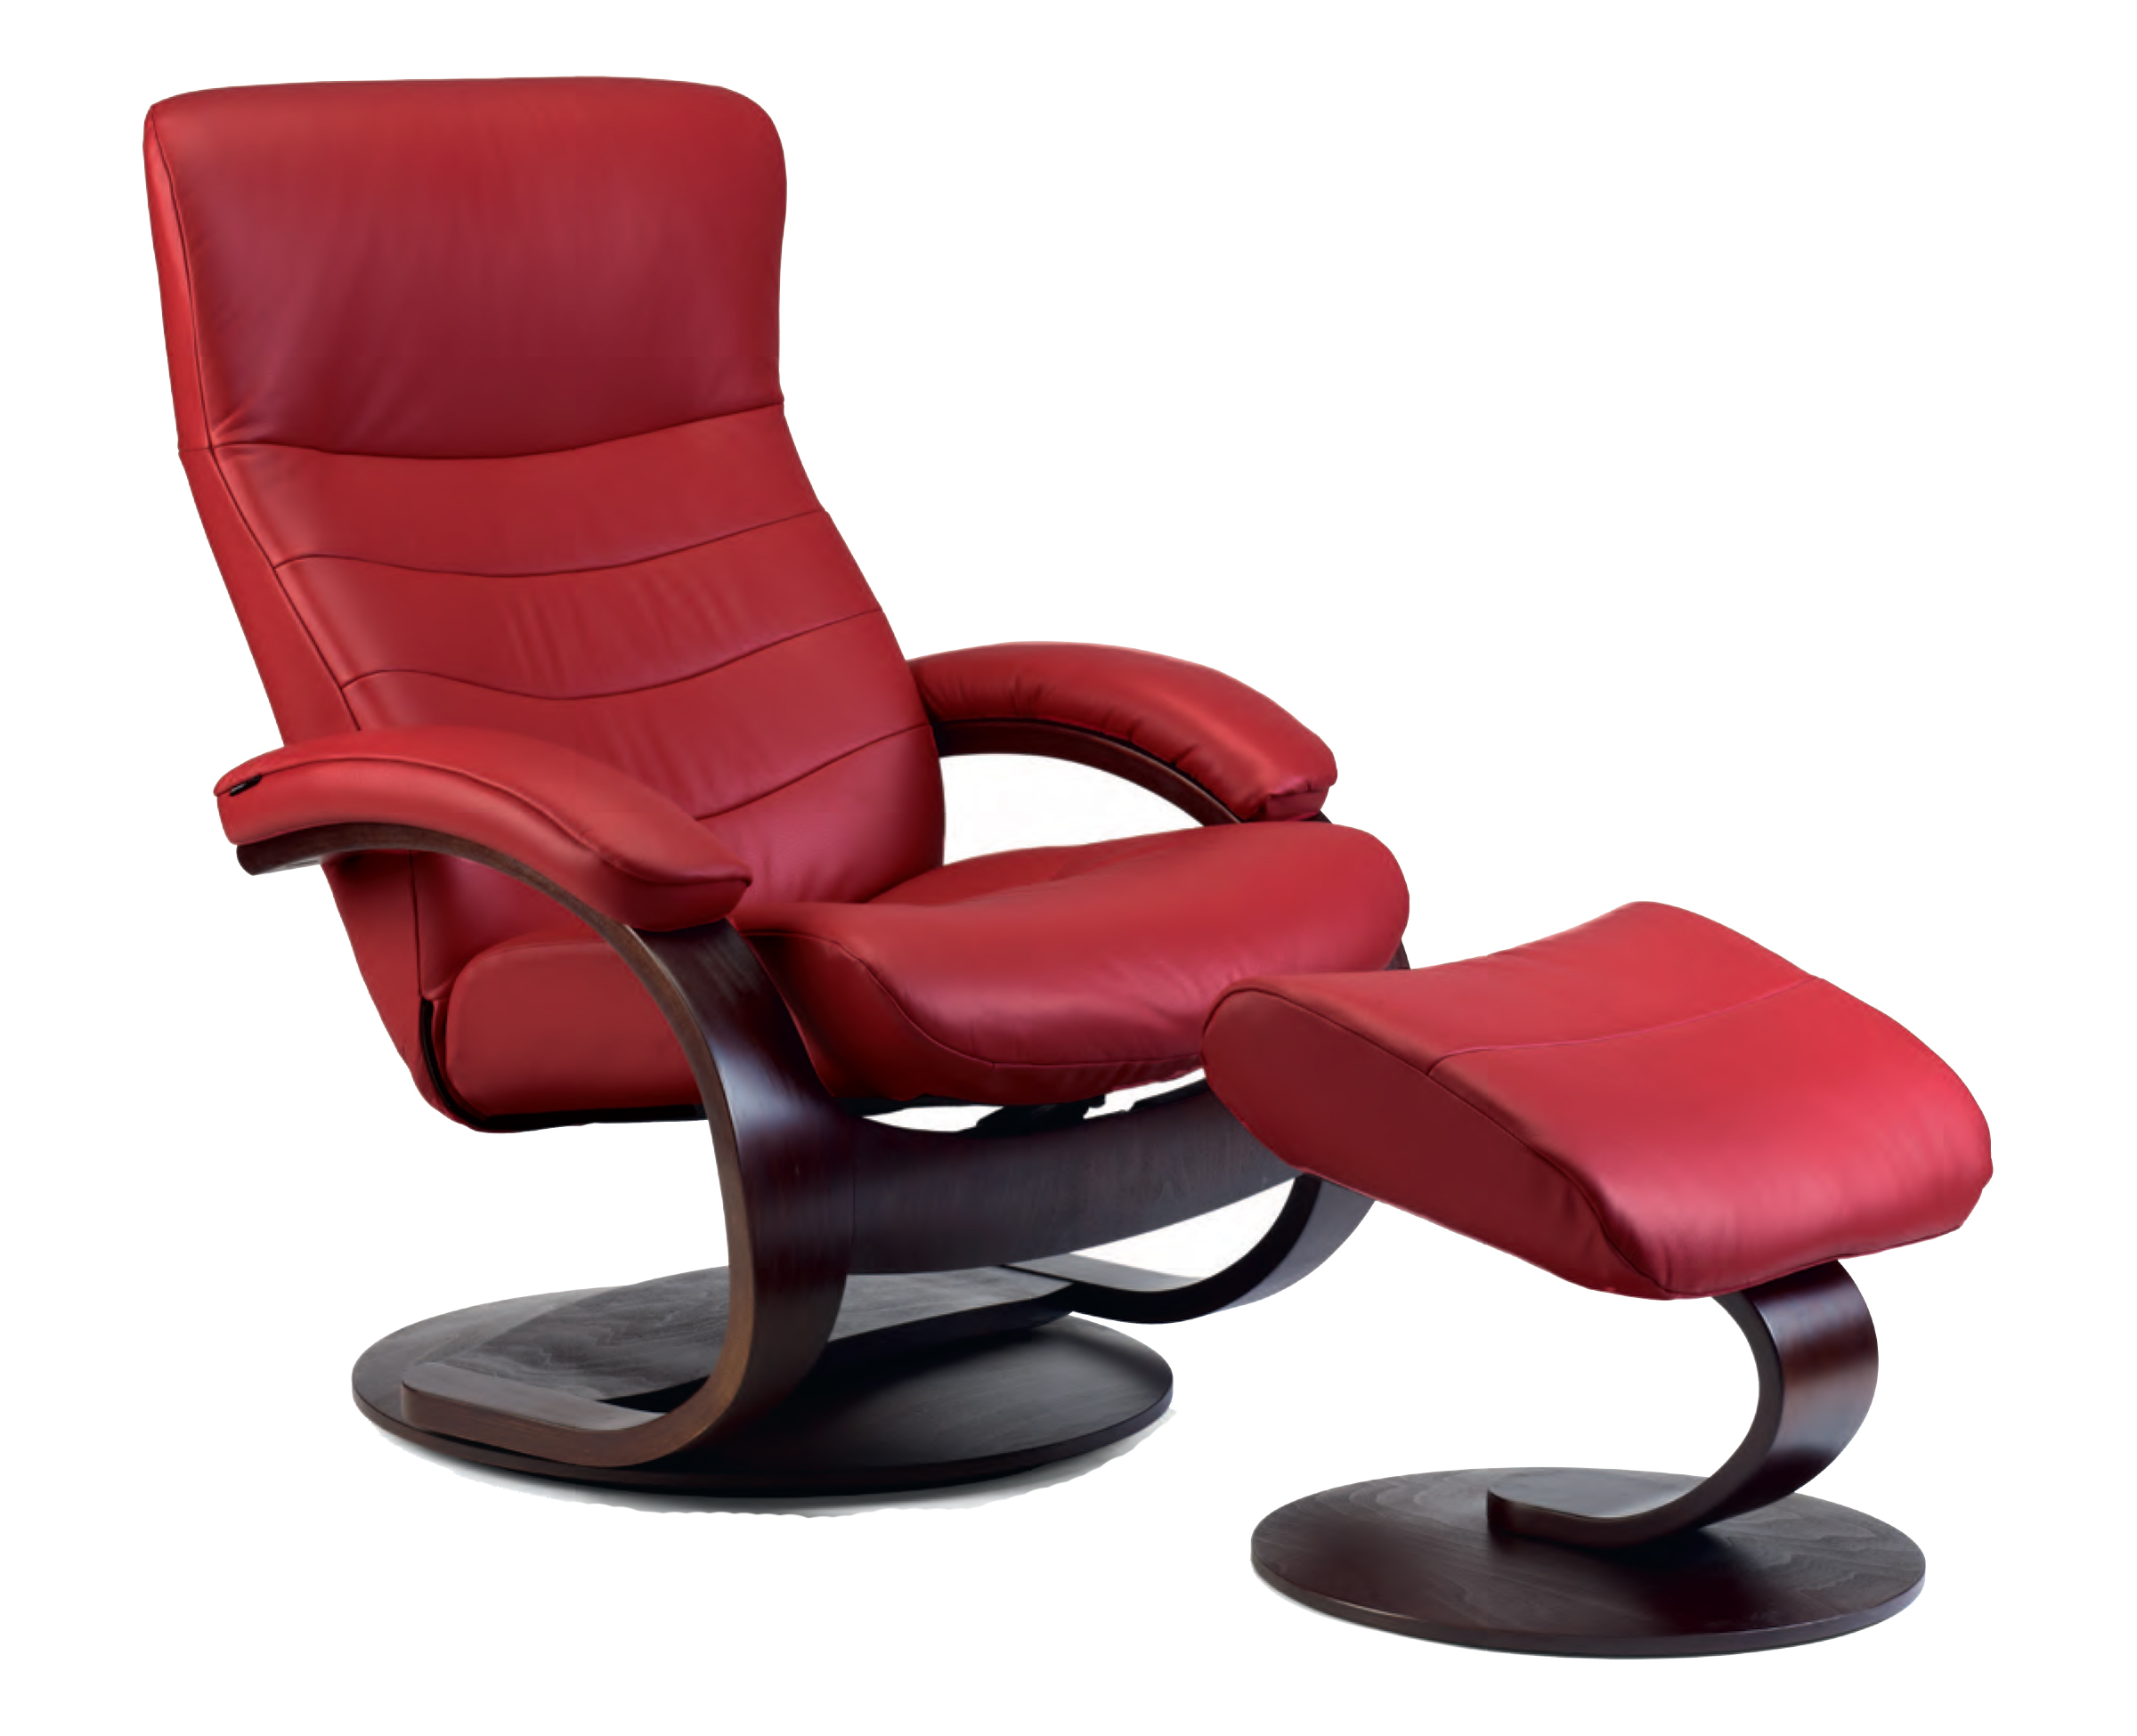 Fjords Trandal Ergonomic Leather C Frame Recliner Chair